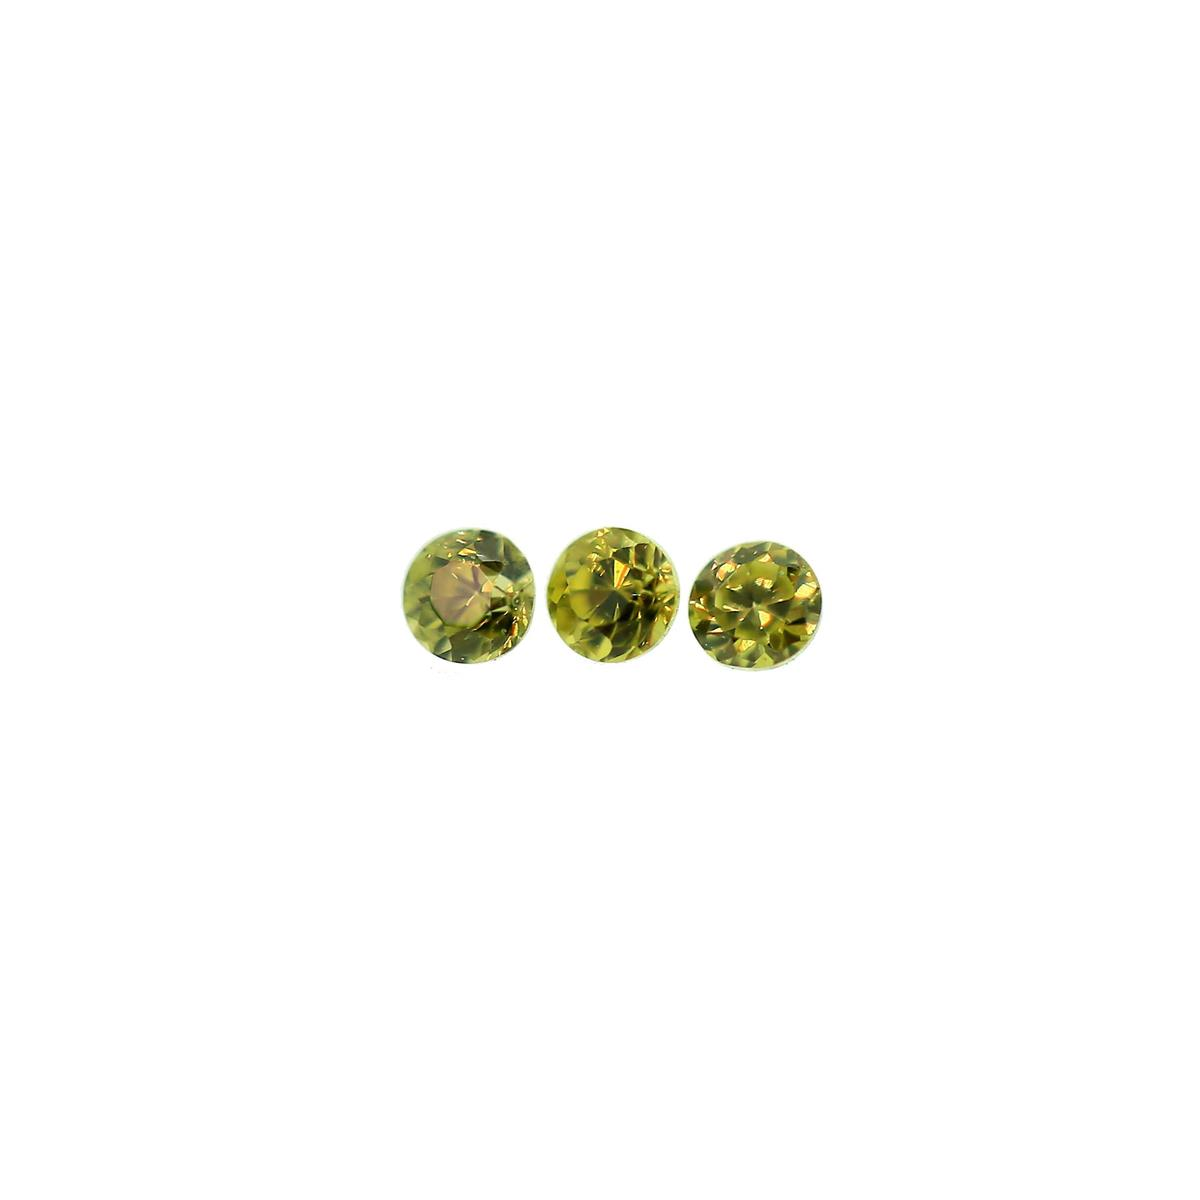 Synthetic Peridot 1.75mm Round